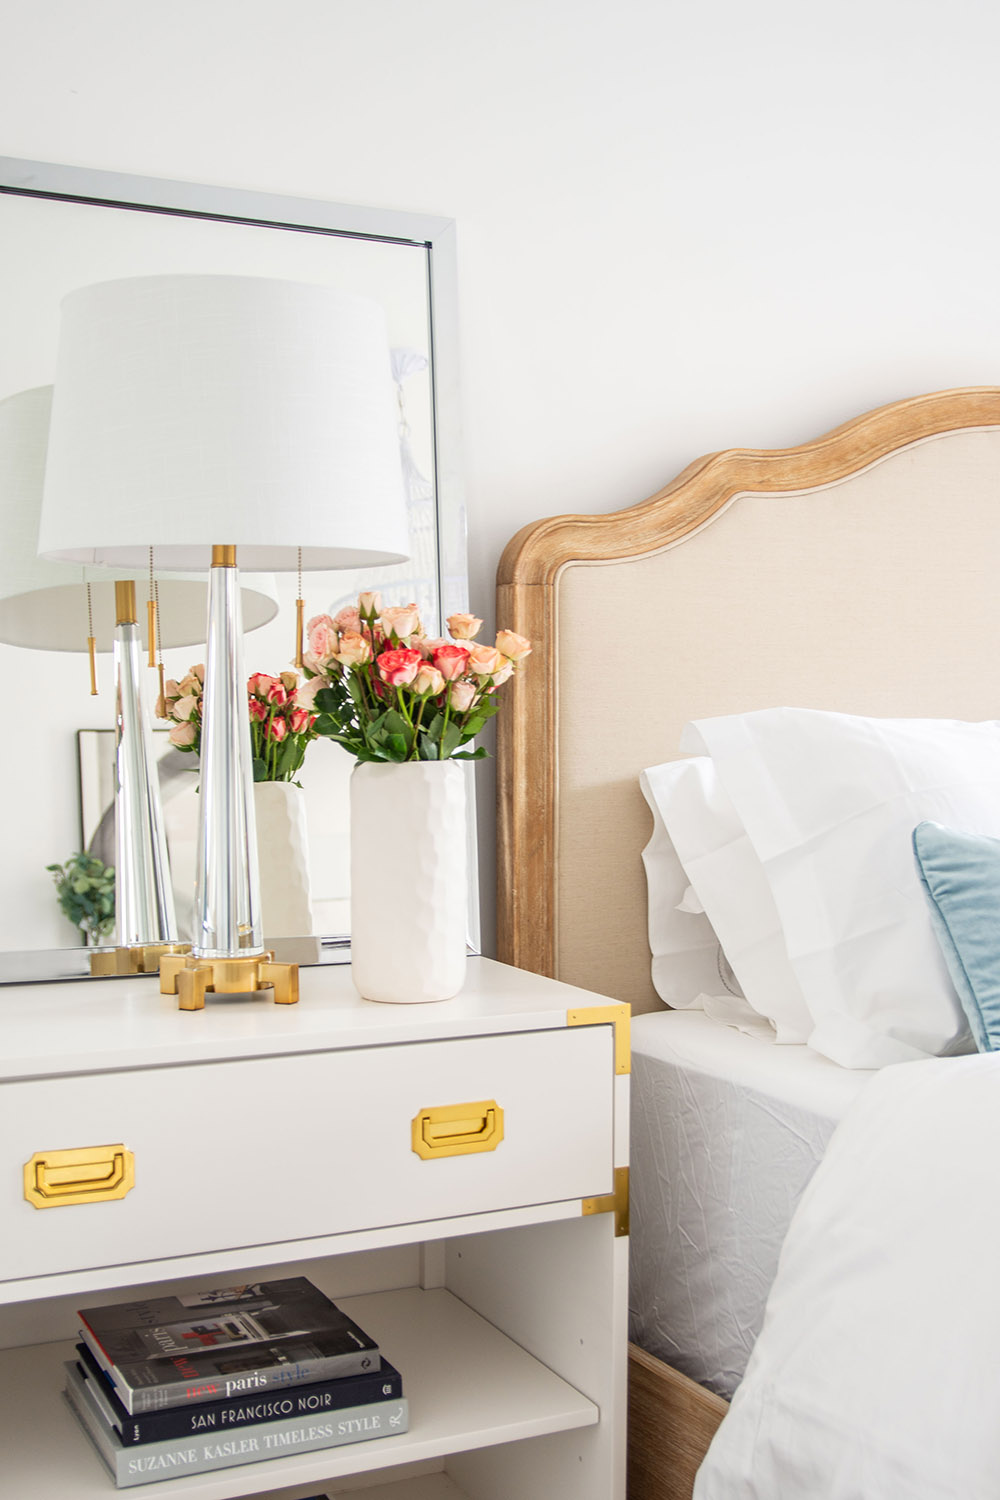 A bedroom scene featuring a nightstand with a lamp and flowers.